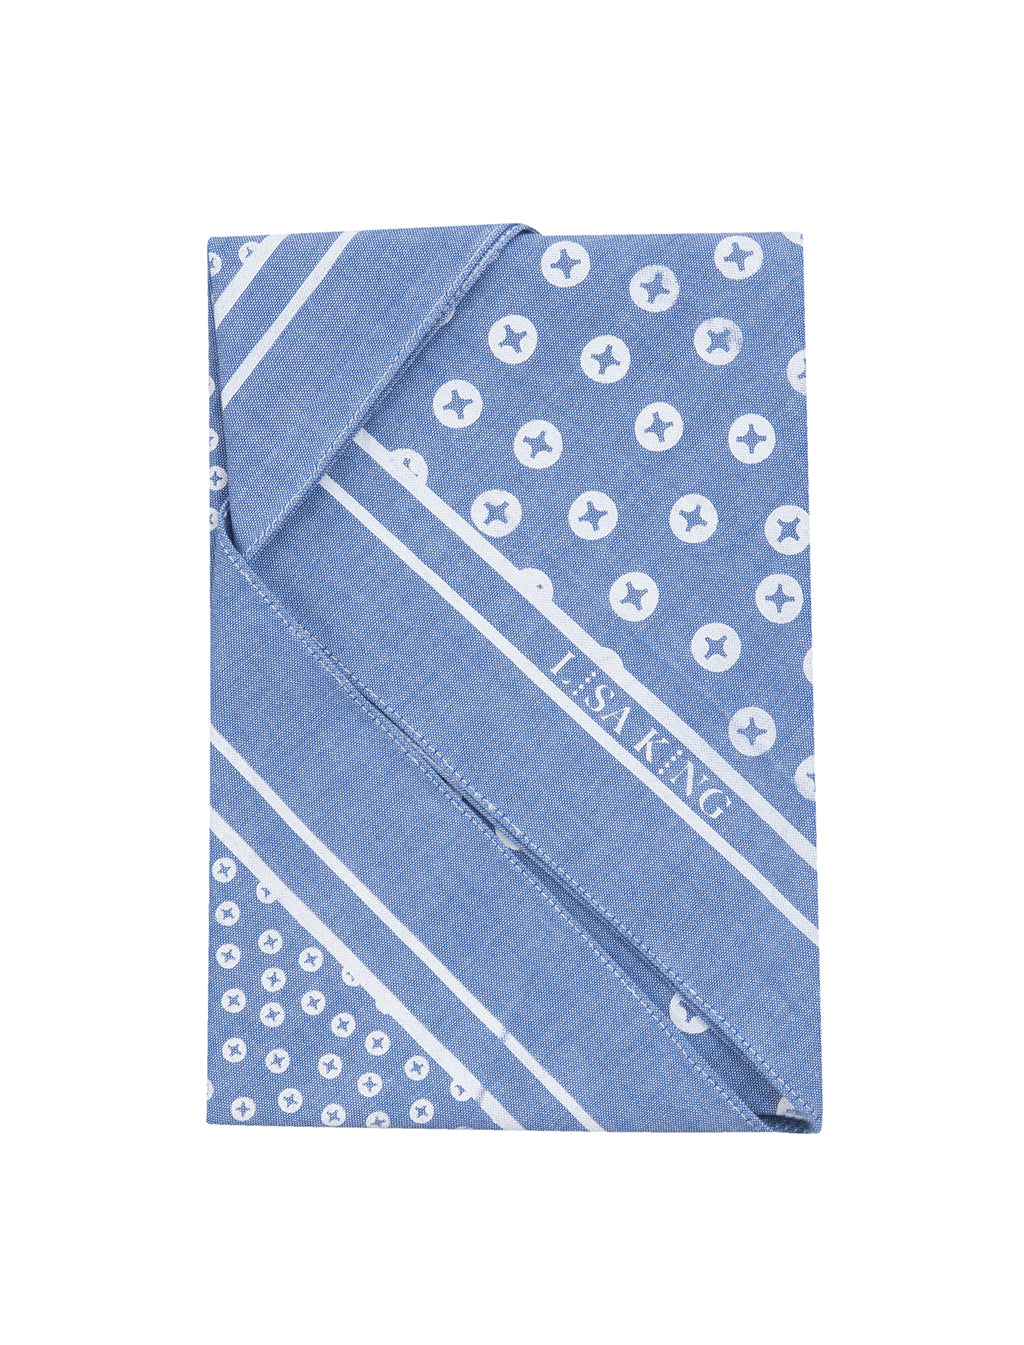 BLUE (LIGHT) COTTON BANDANA